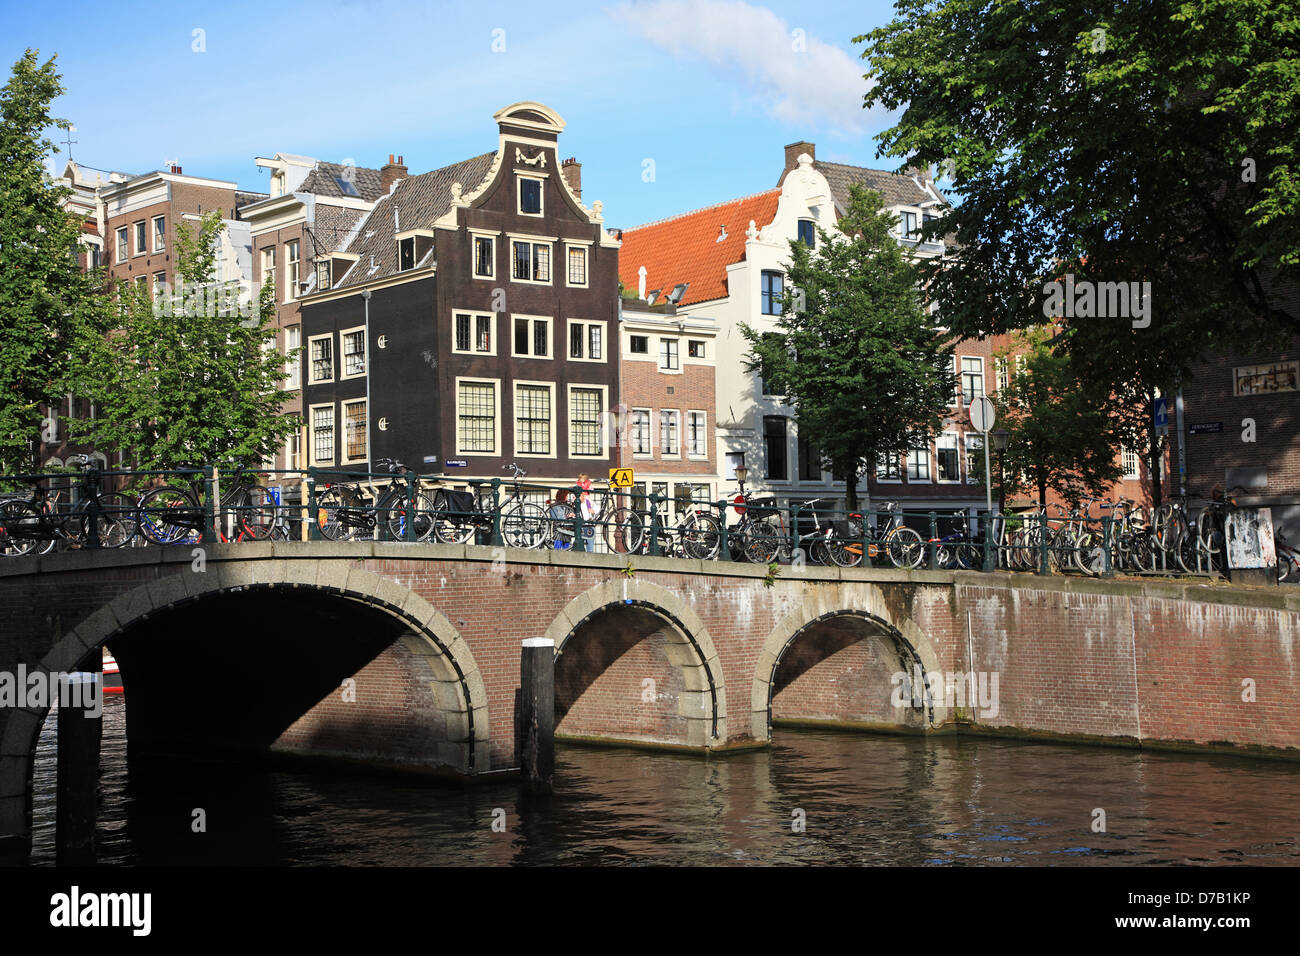 The Netherlands, 17th century canal ring area of Amsterdam, UNESCO World Heritage - Stock Image